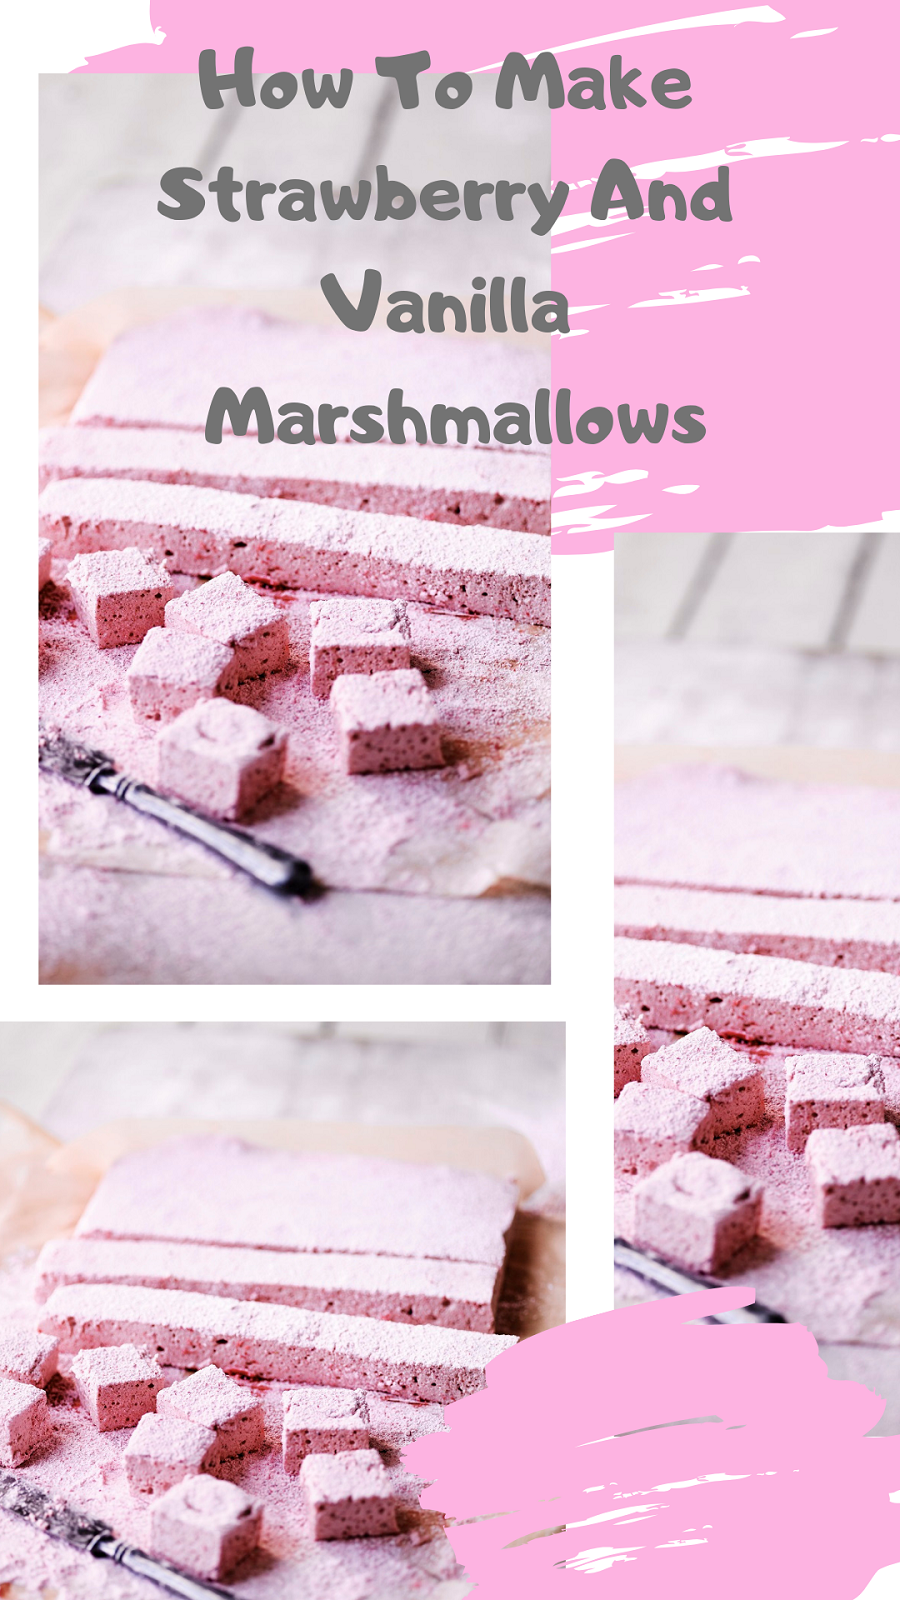 Strawberry And Vanilla Marshmallows